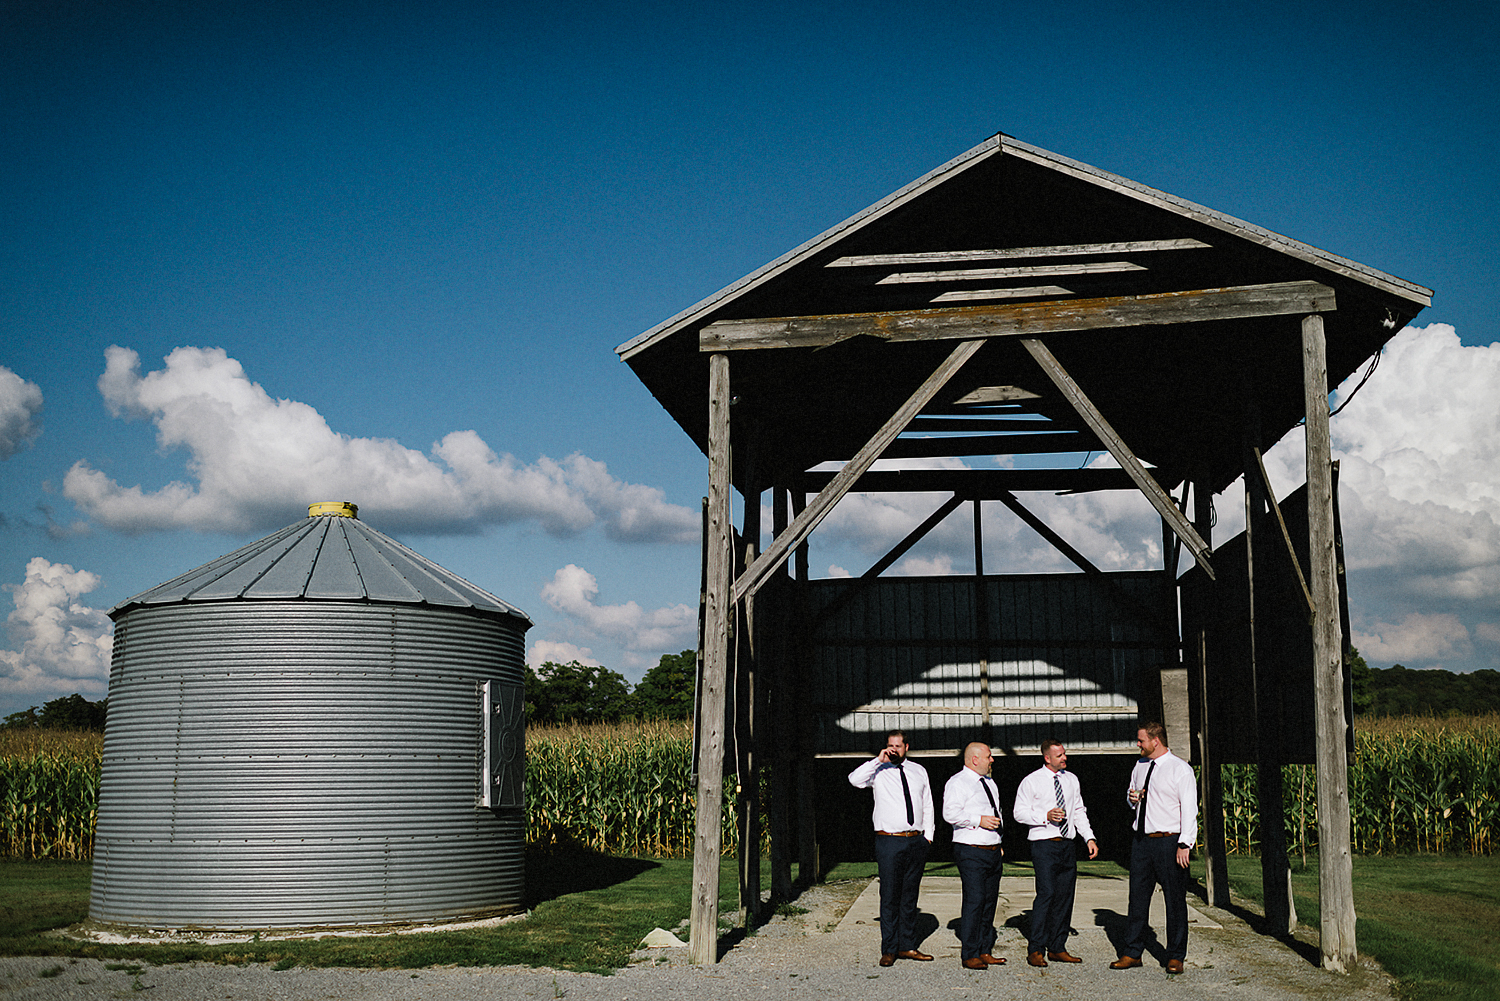 dowswell-barn-wedding-beaverton-best-wedding-photographers-toronto-moody-style-candid-photojounalistic-approach-intimate-vintage-farm-wedding-Farm-wedding-bridal-party-groomsmen-candid-drinks-cinematic.jpg